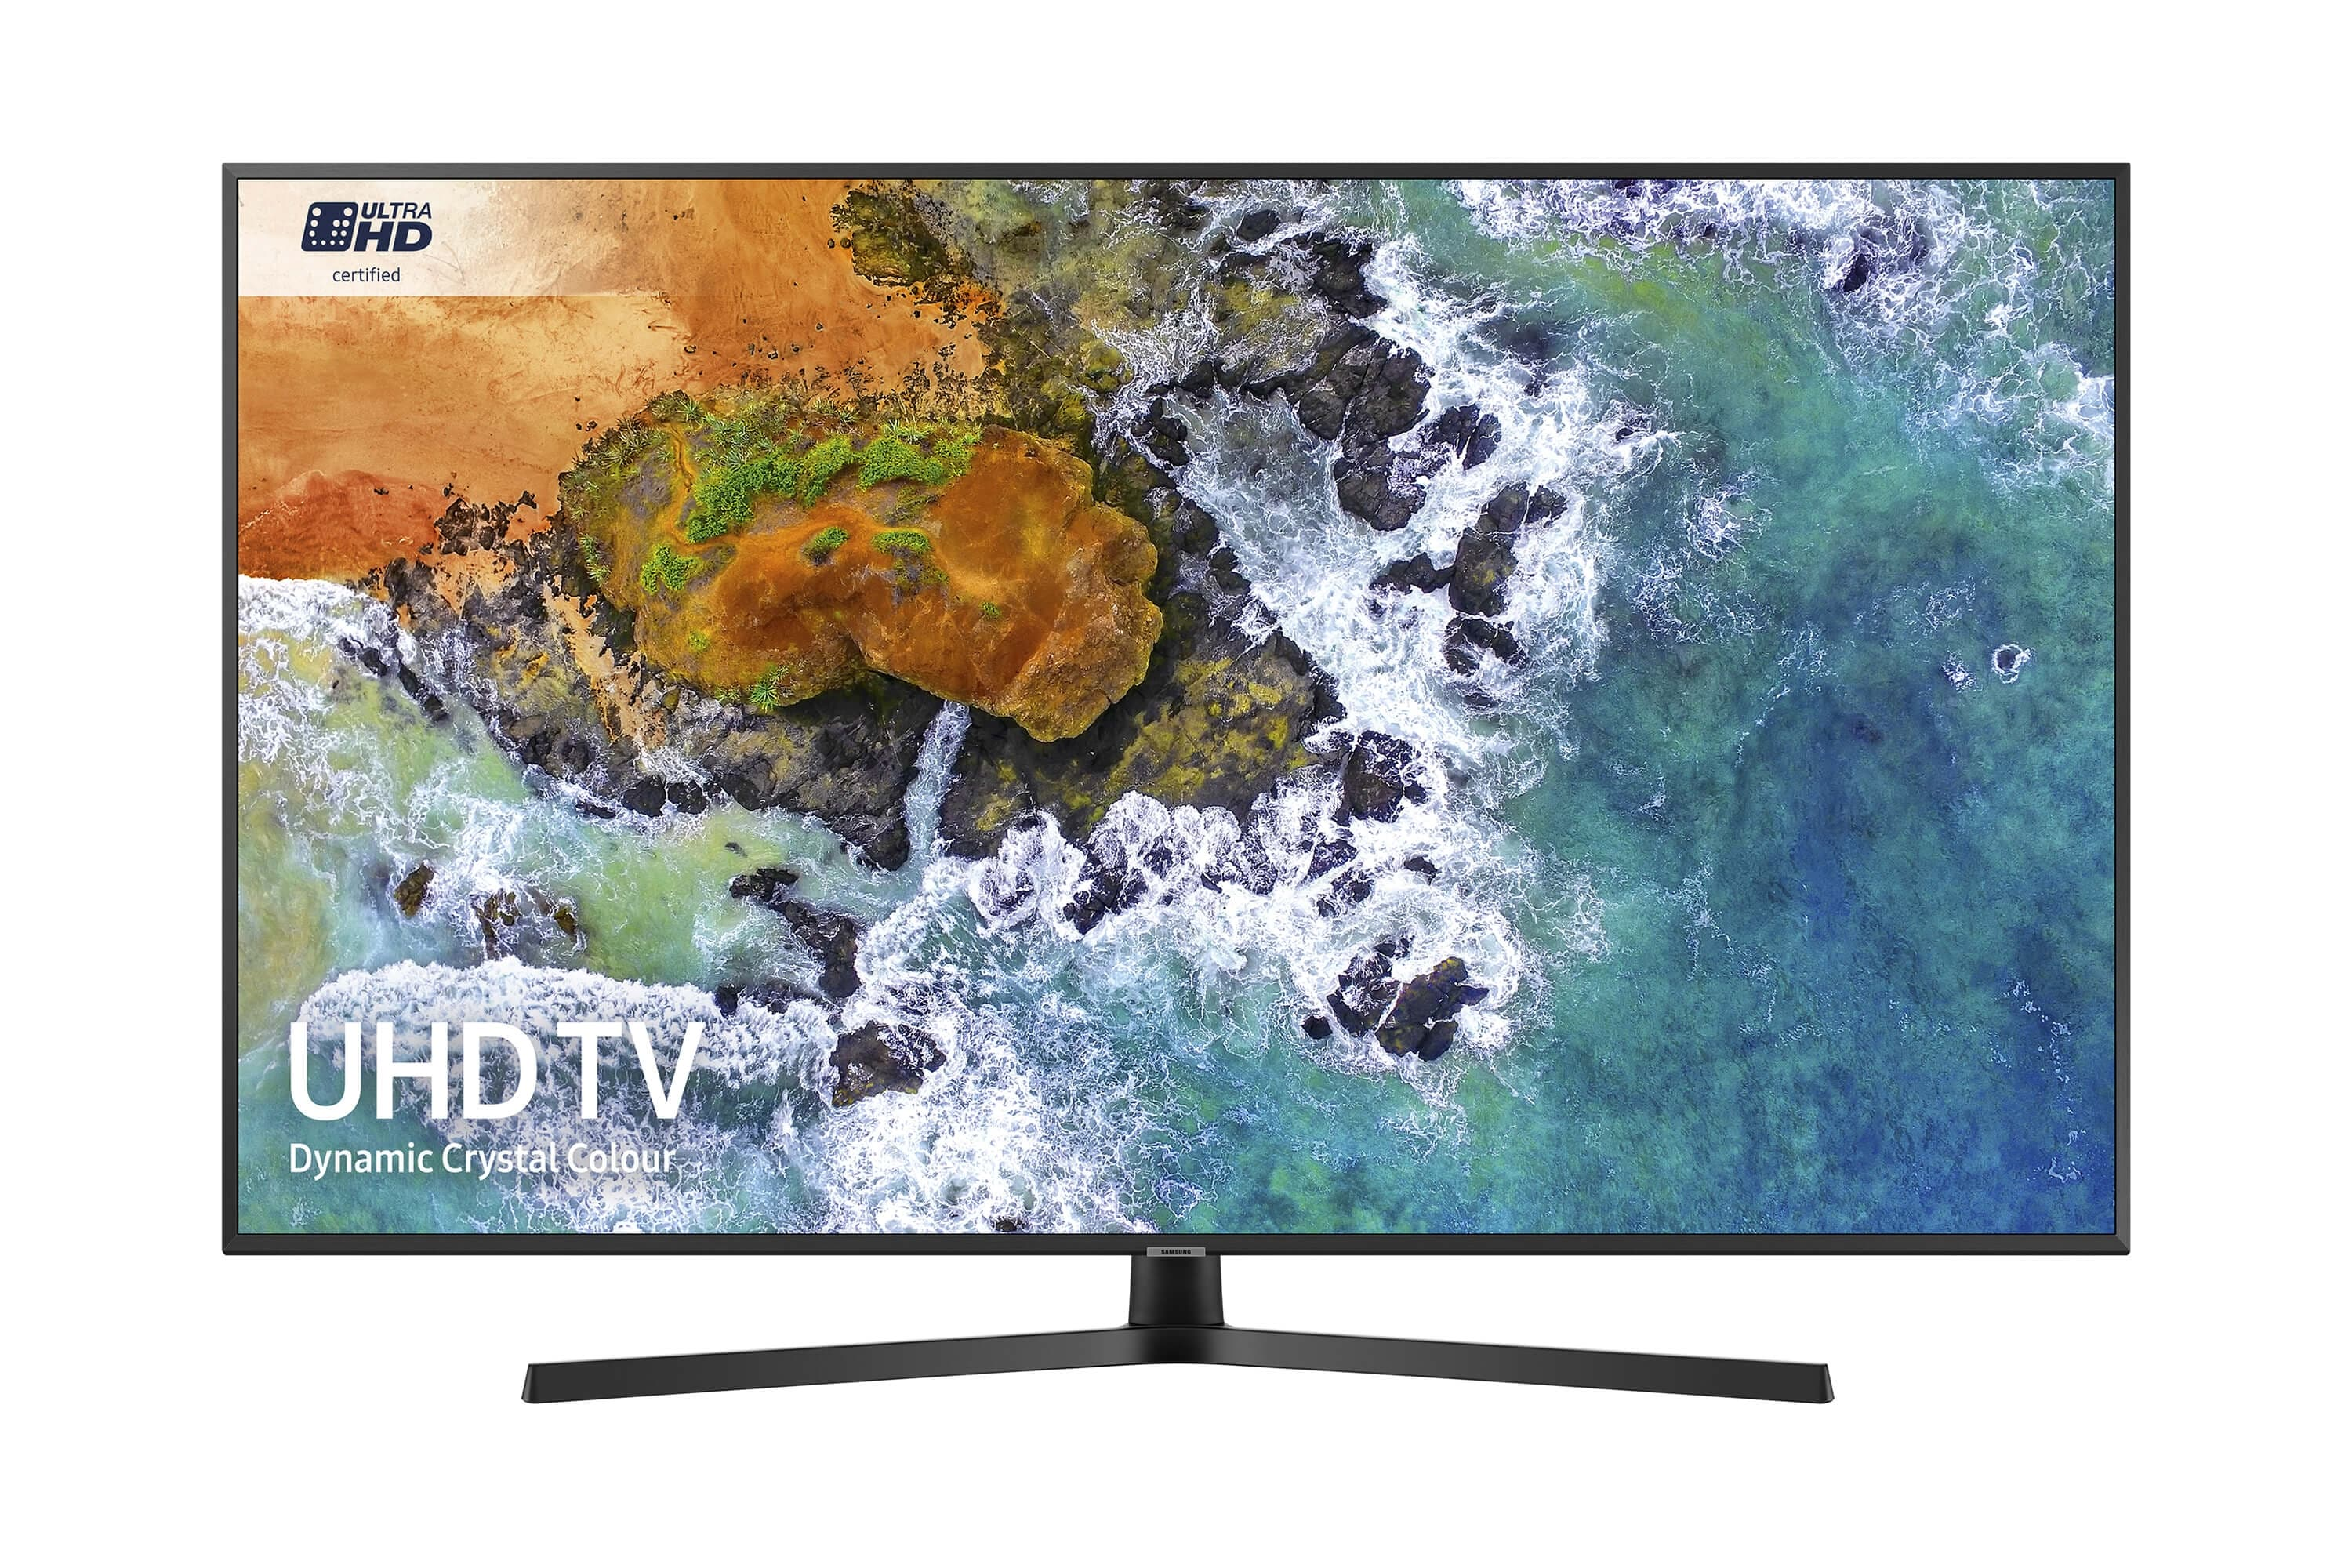 hight resolution of 55 nu7400 dynamic crystal colour ultra hd certified hdr smart 4k tv